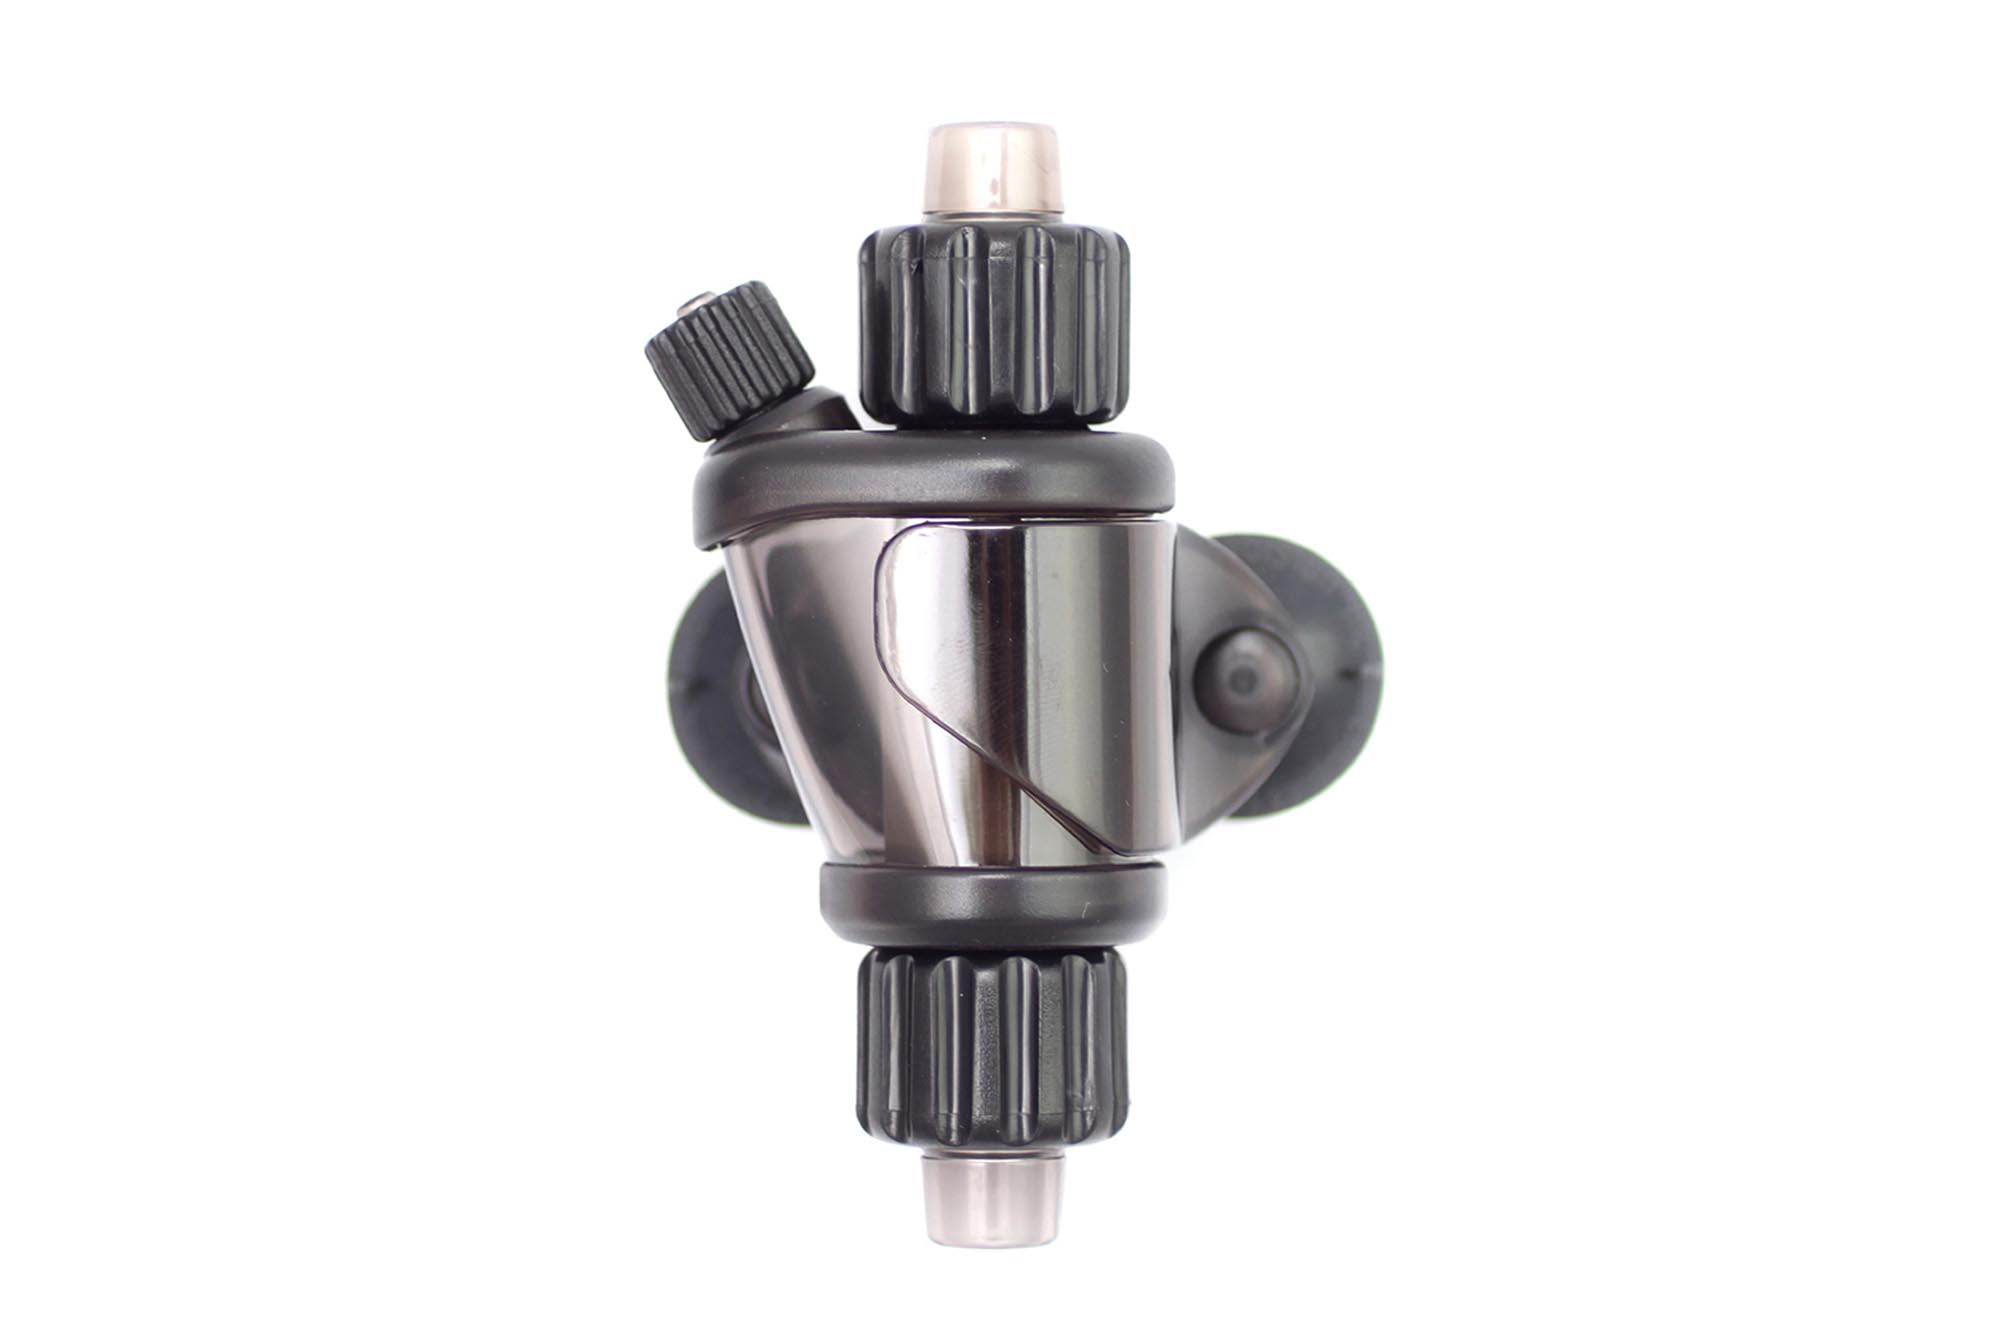 Foto av 12 / 16mm UP Inline Atomizer Diffuser för planterade akvarier